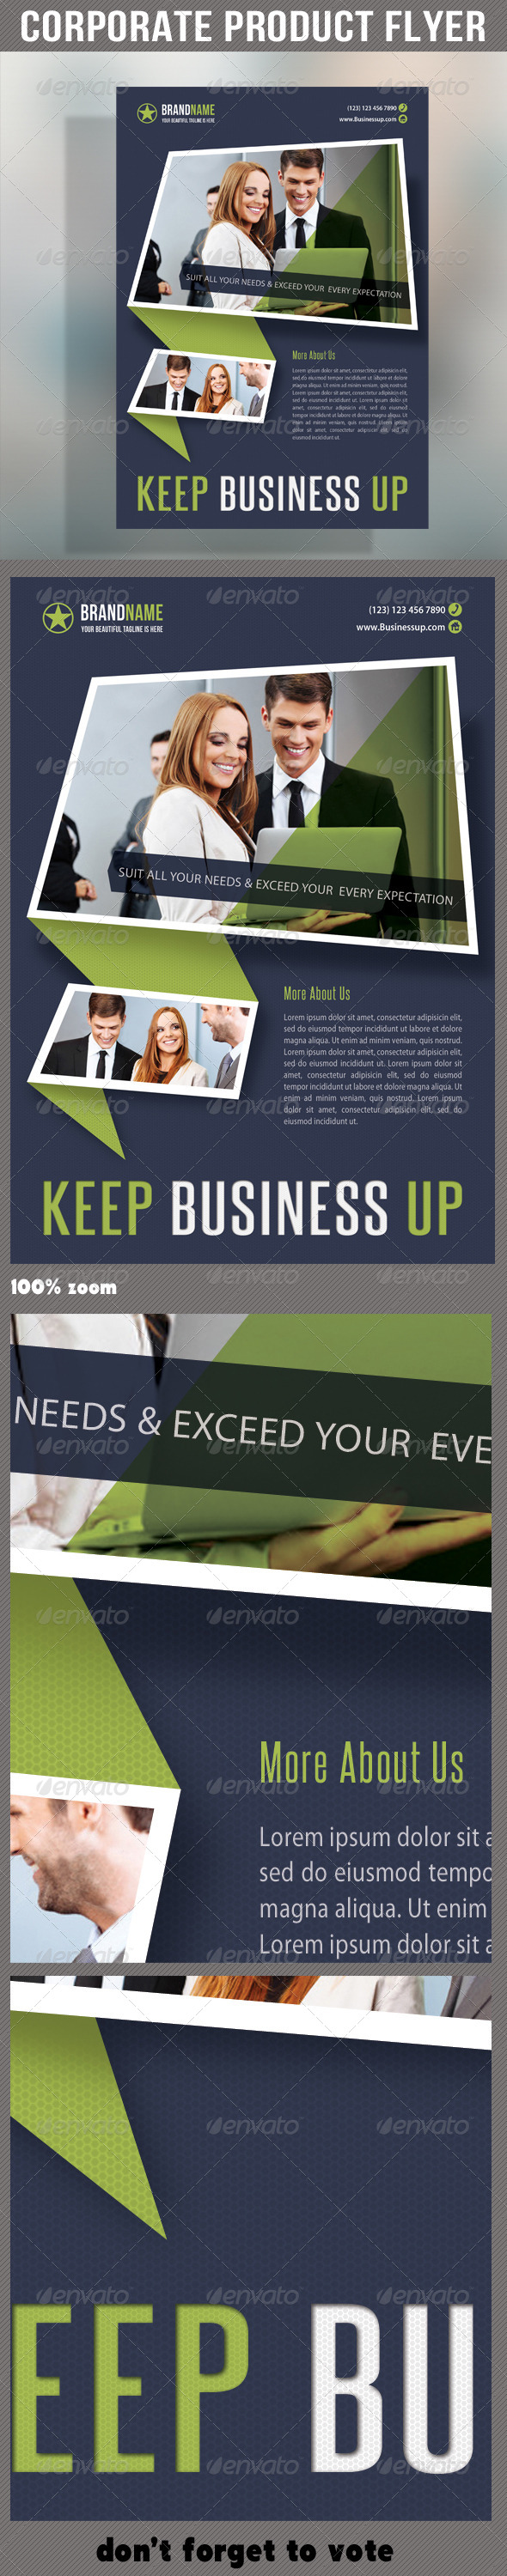 Corporate Product Flyer 52 - Corporate Flyers